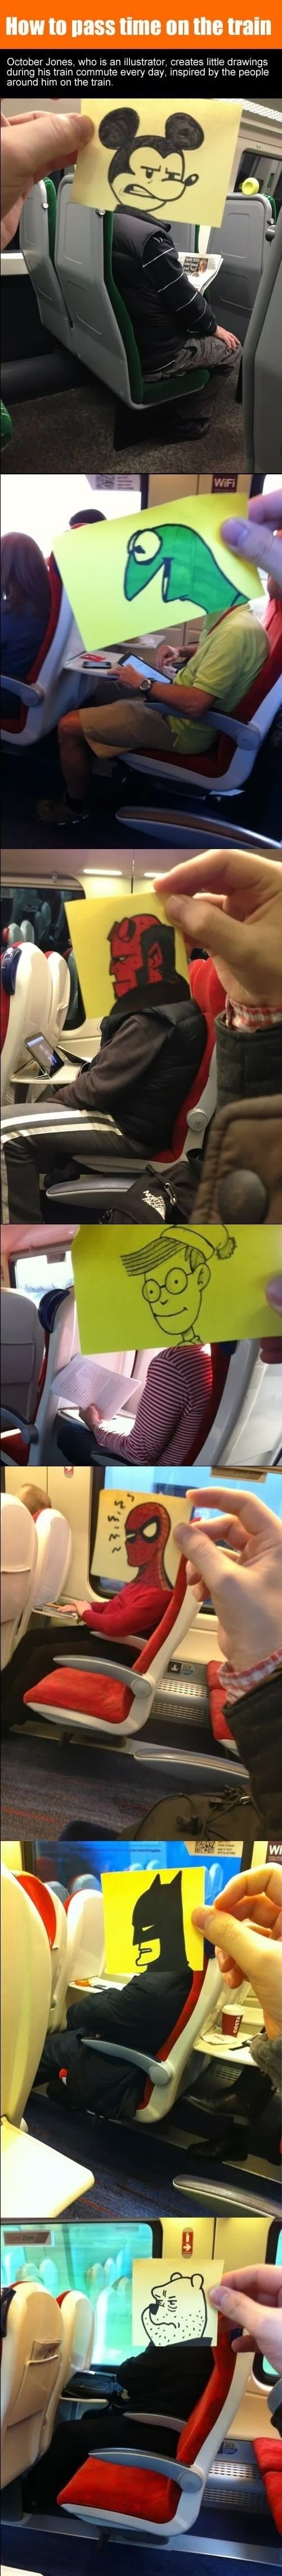 s7reetsahead: how to pass time on train